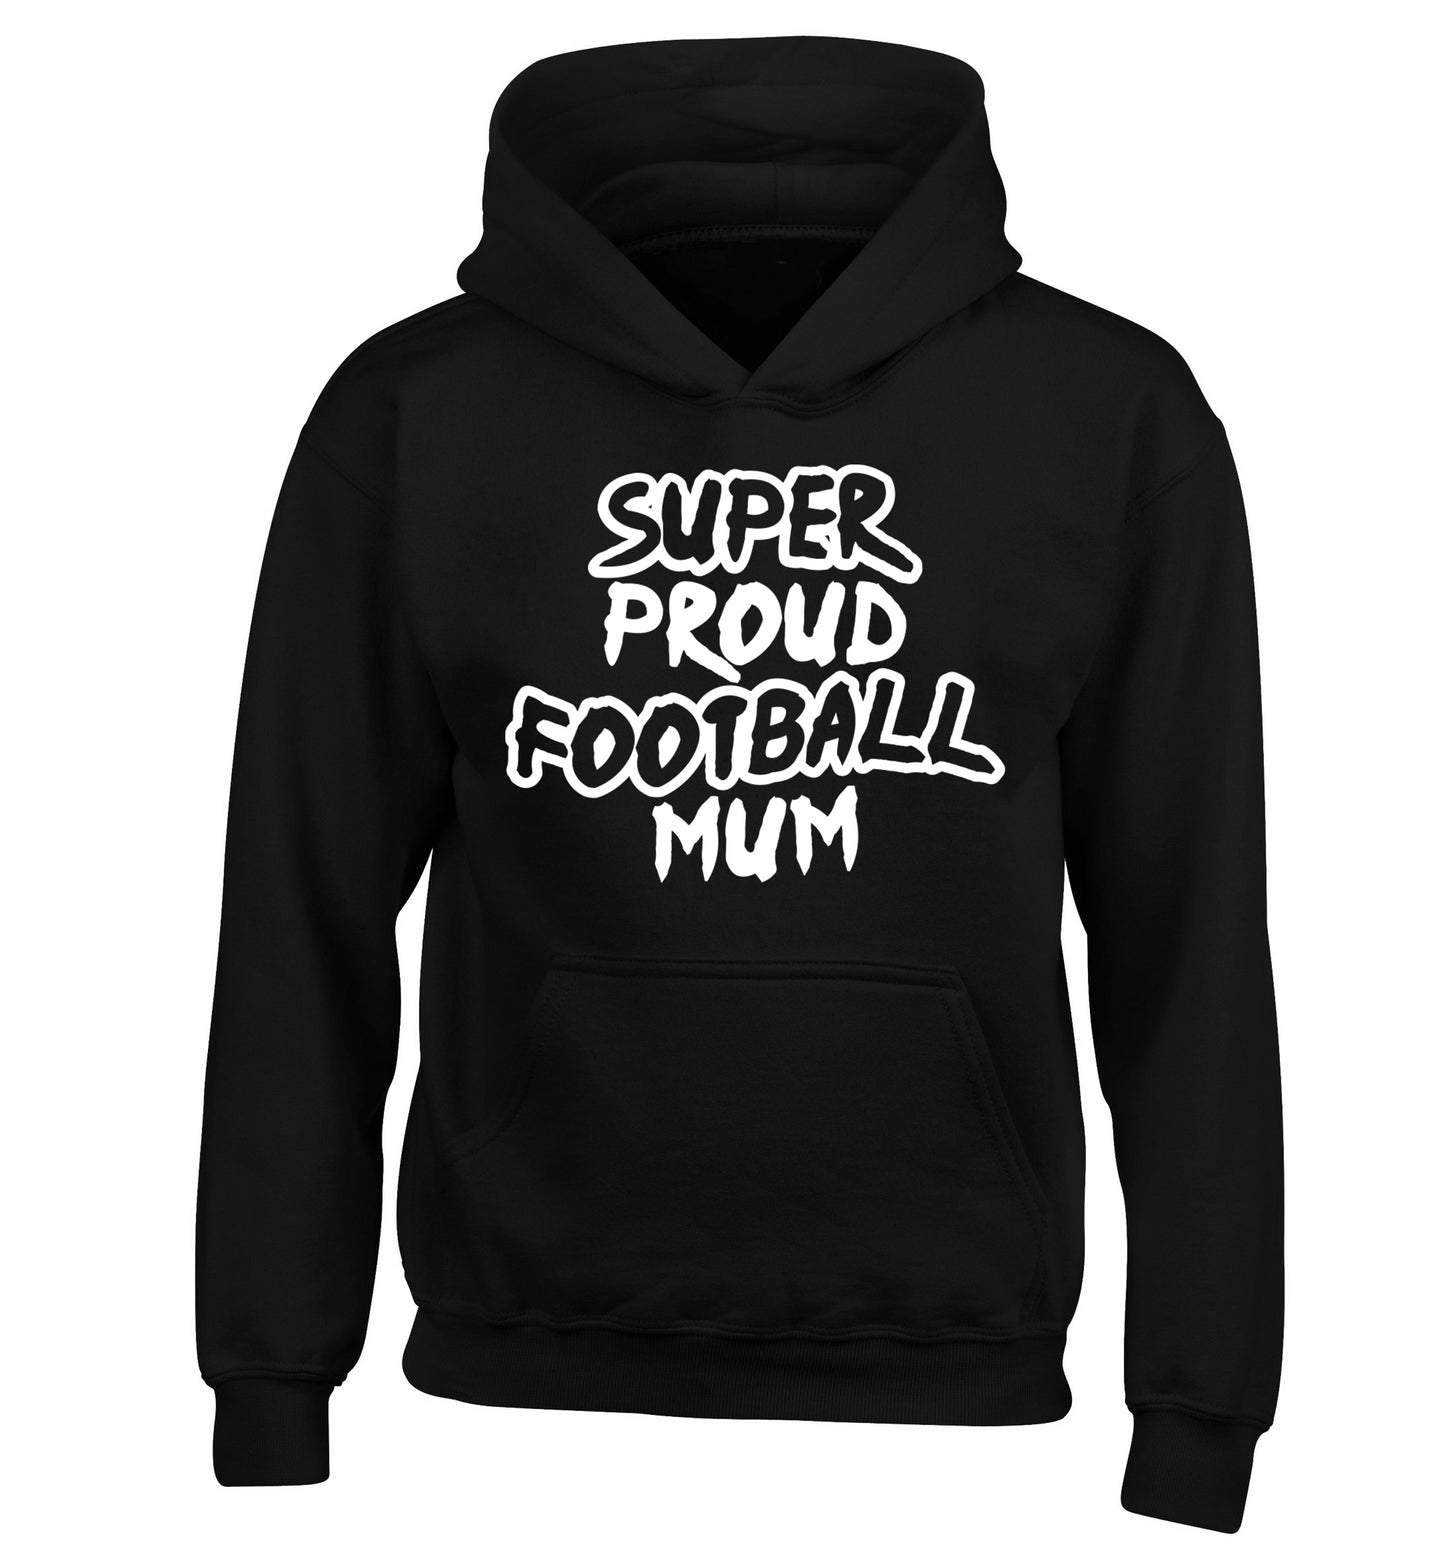 Super proud football mum children's black hoodie 12-14 Years